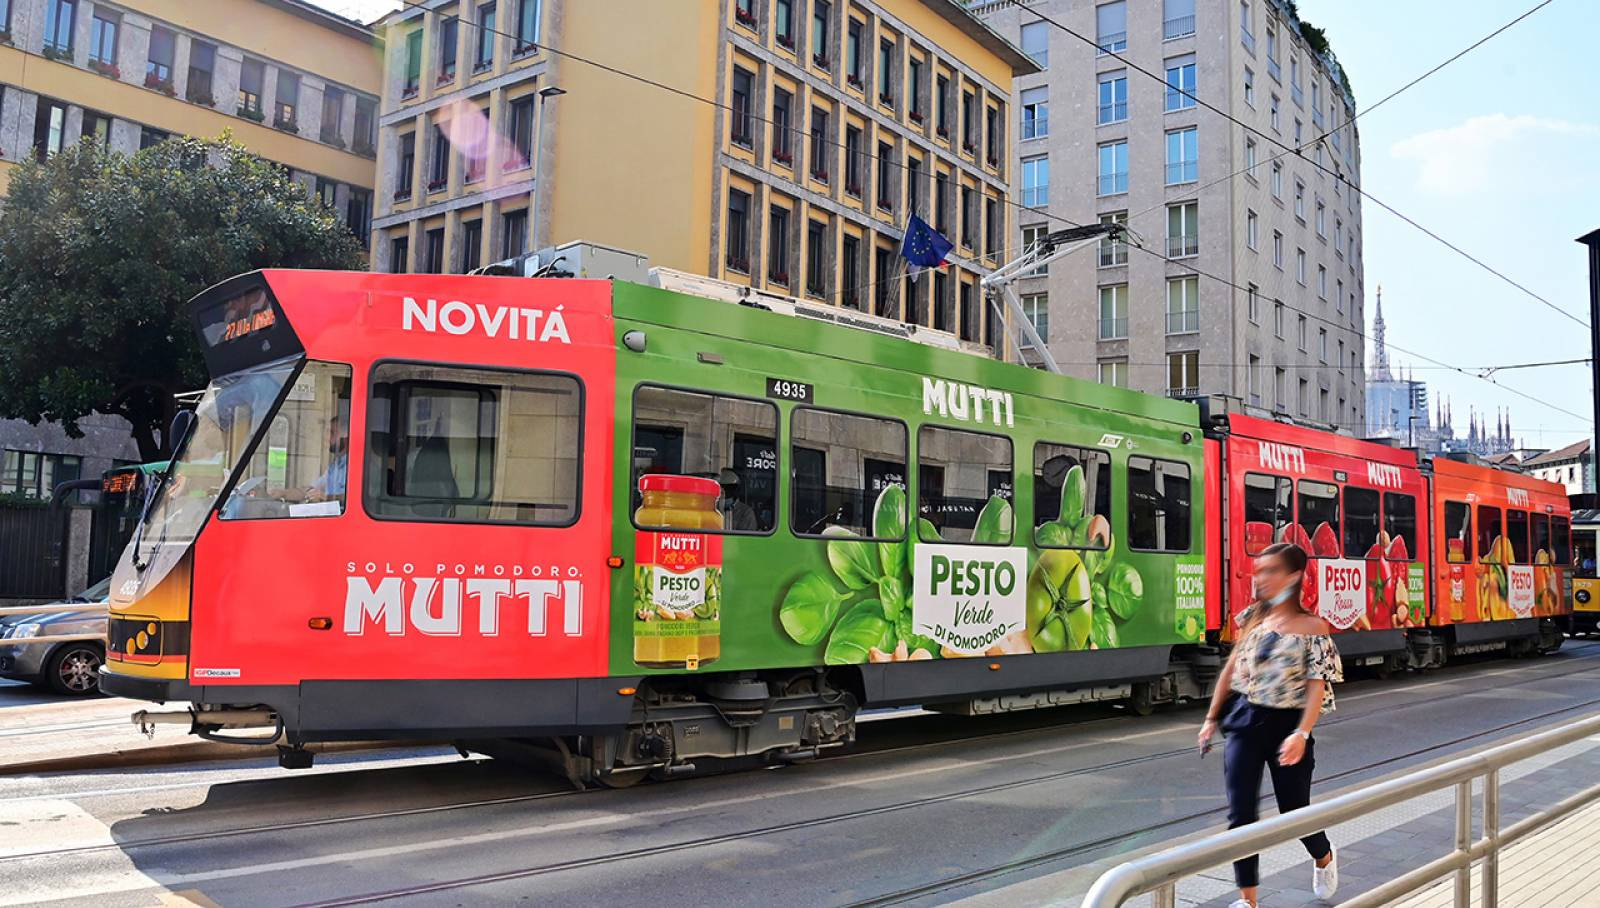 IGPDecaux OOH advertising in Milan Full-Wrap for Mutti